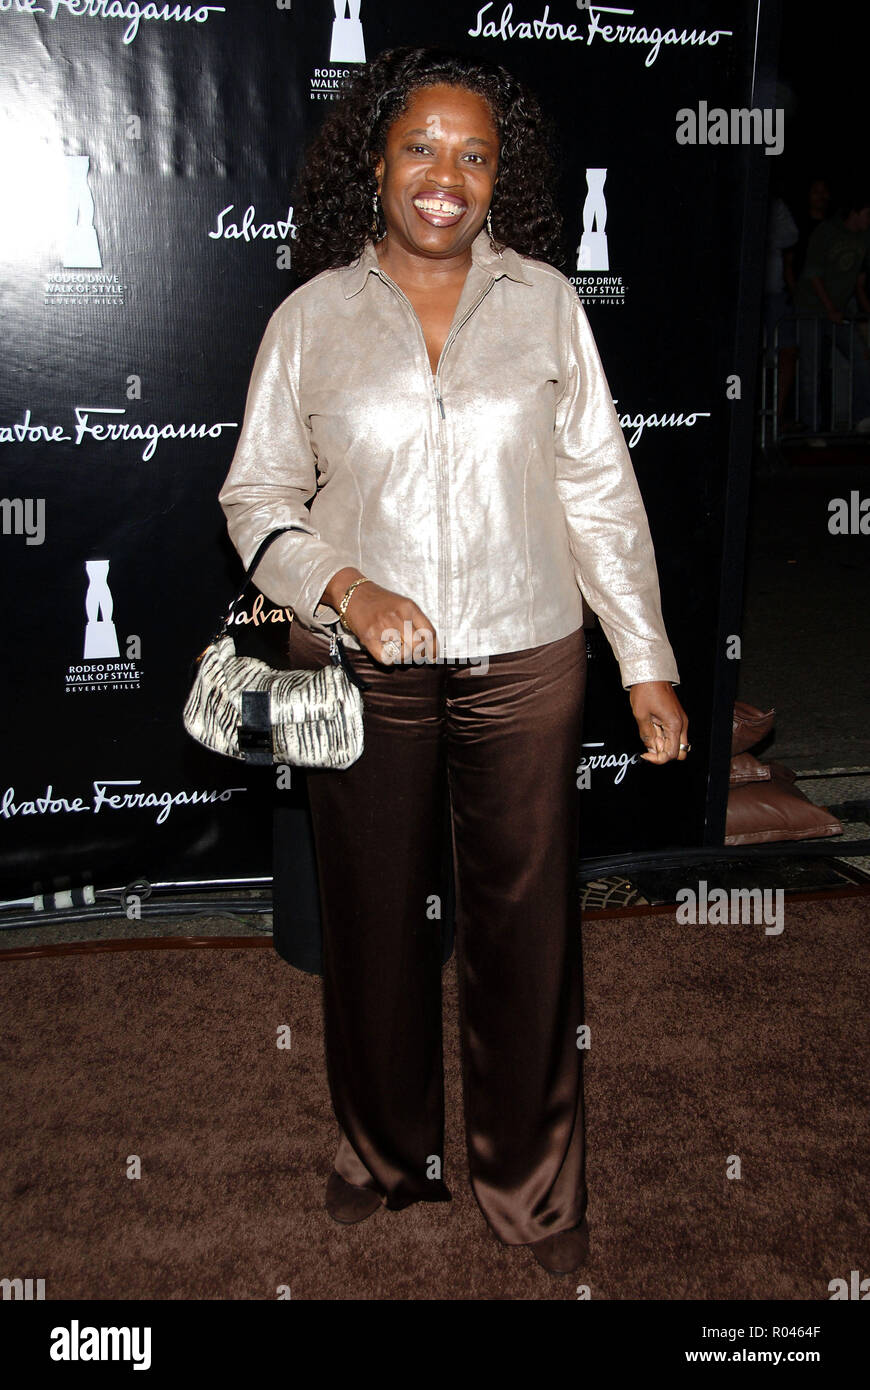 Kanye West mom arriving at the SALVATORE FERRAGAMO RODEO